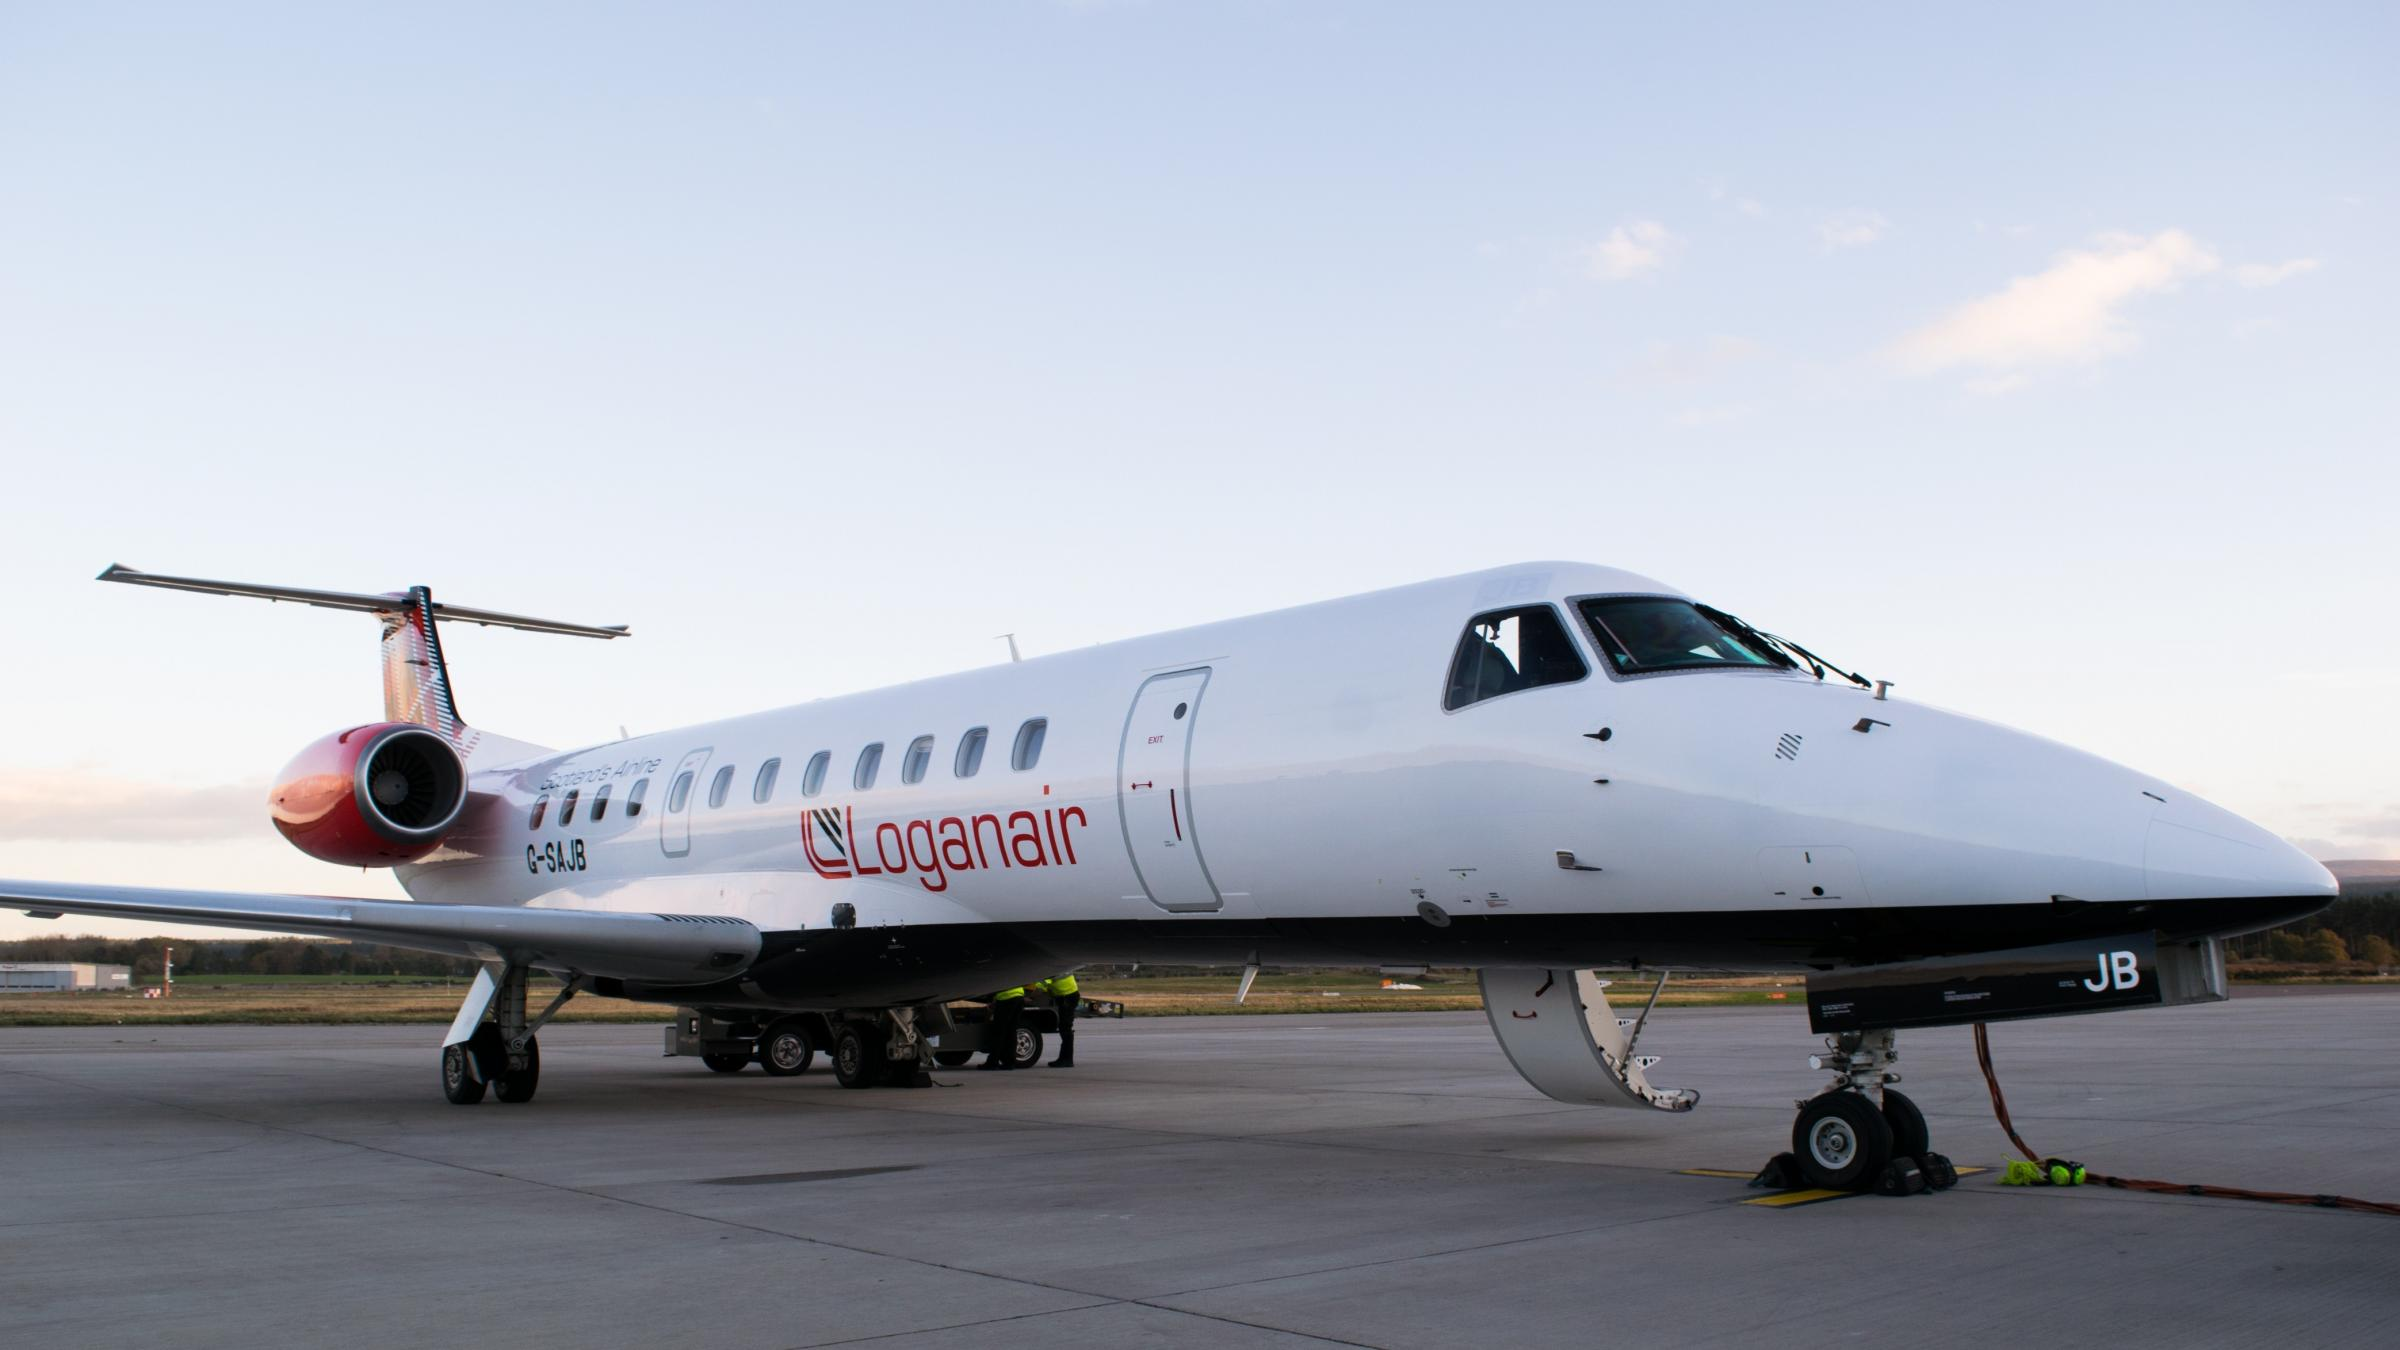 Thirty-five jobs at Loganair saved from the axe after upskilling initiative